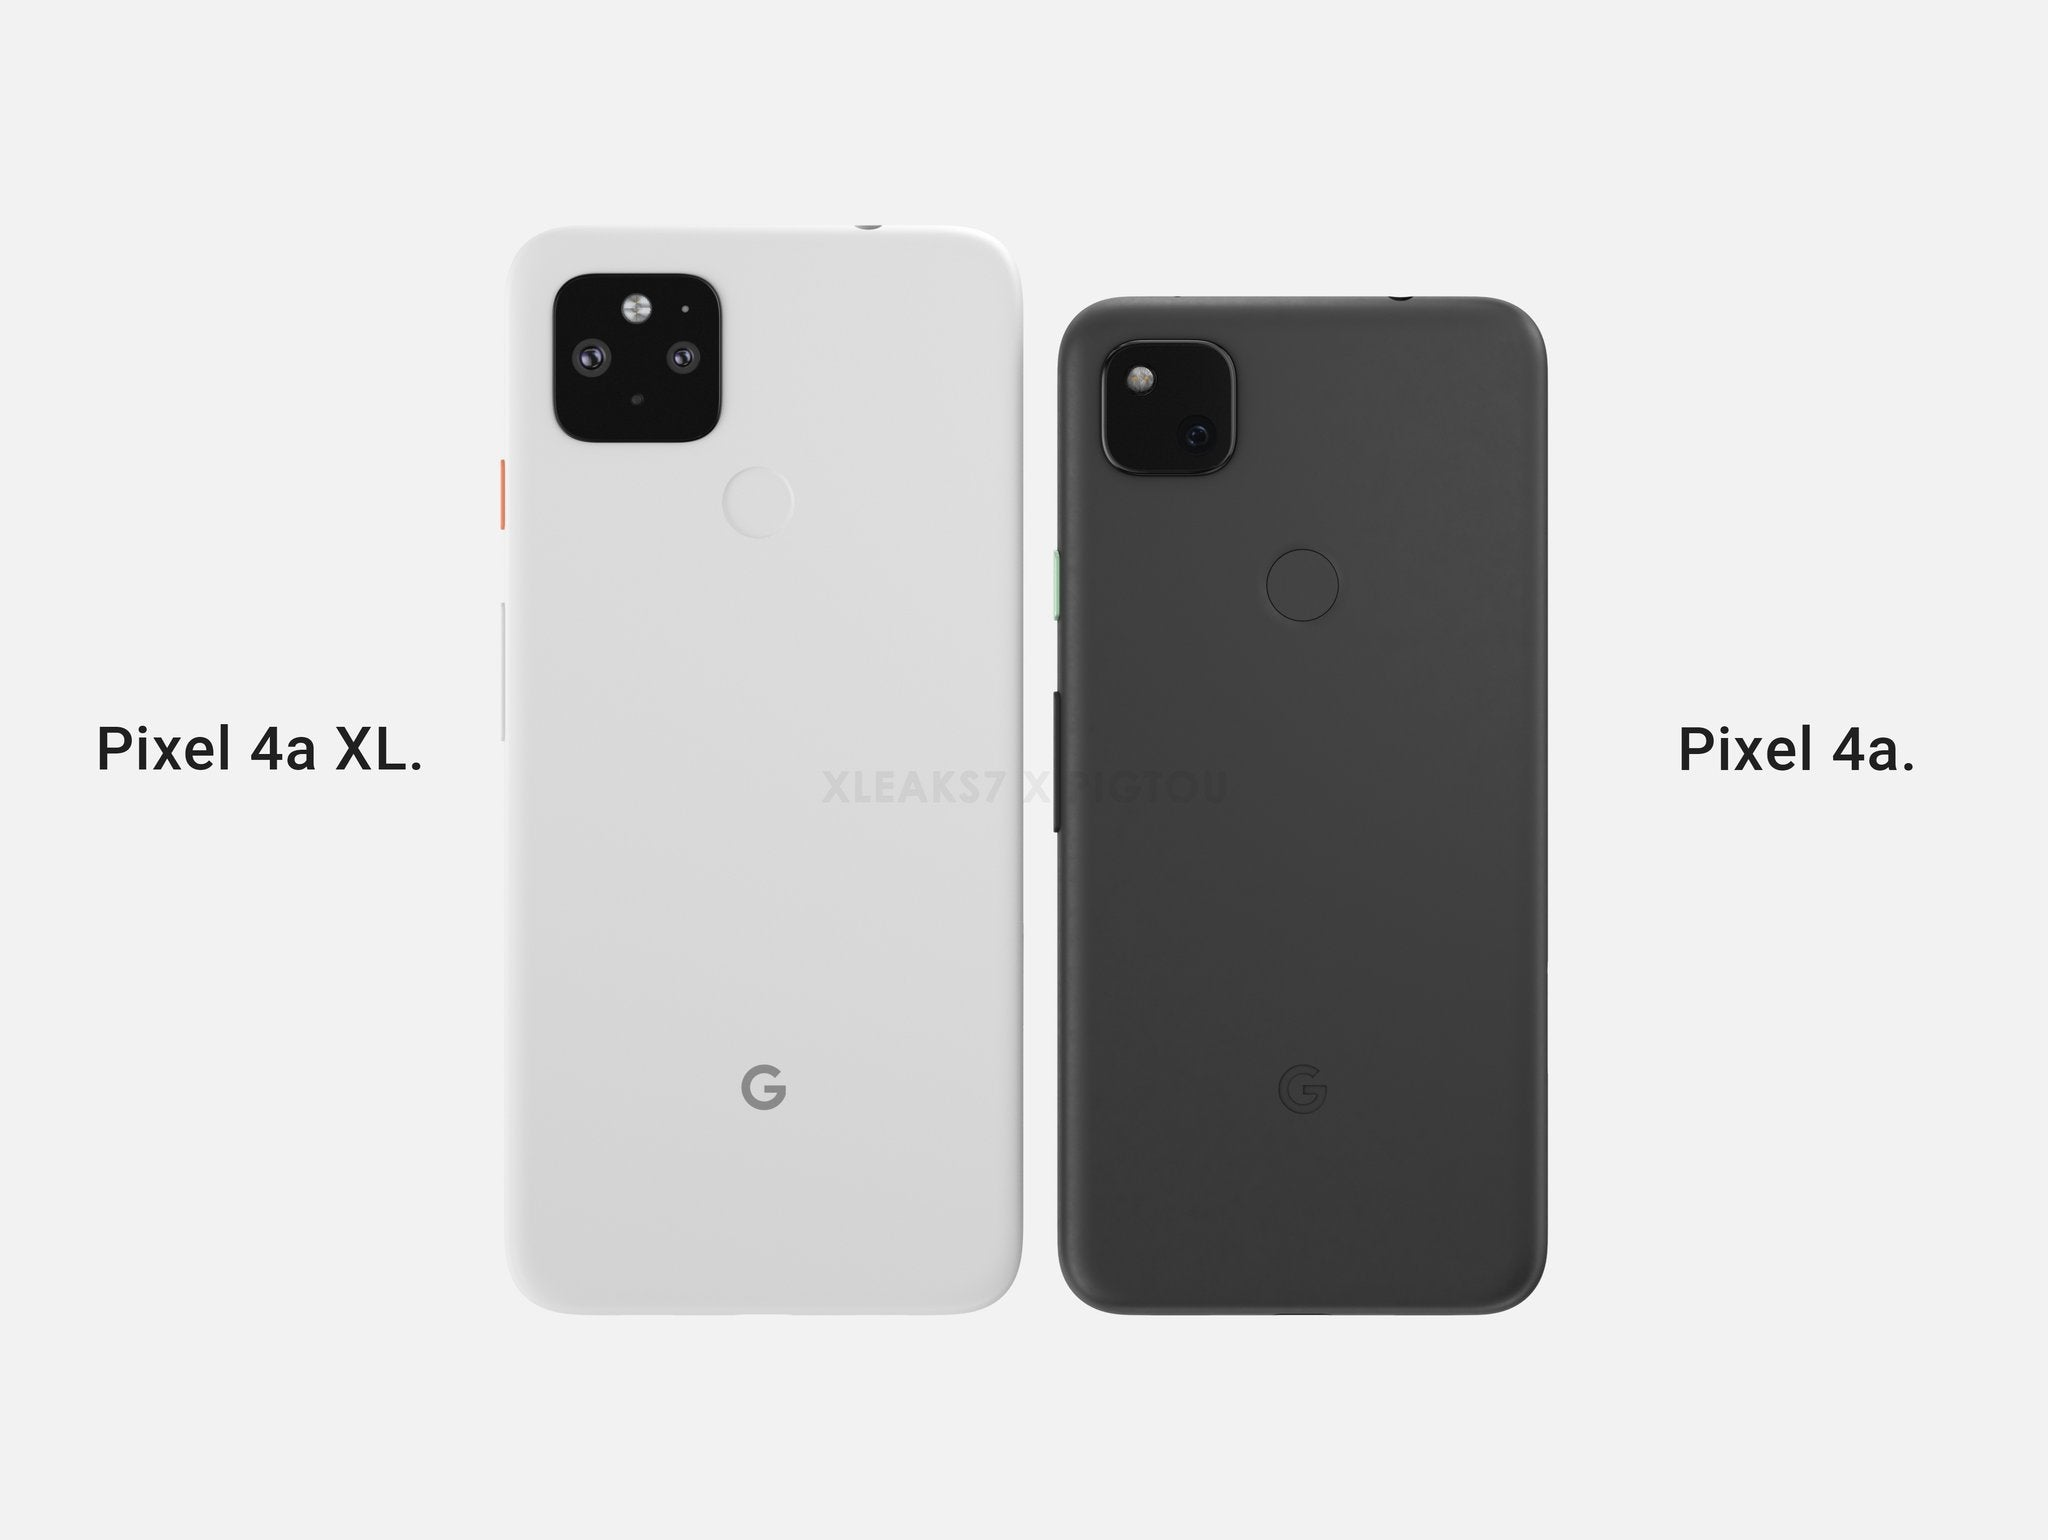 Pixel 4a: Google's budget phone could be a few days away from release